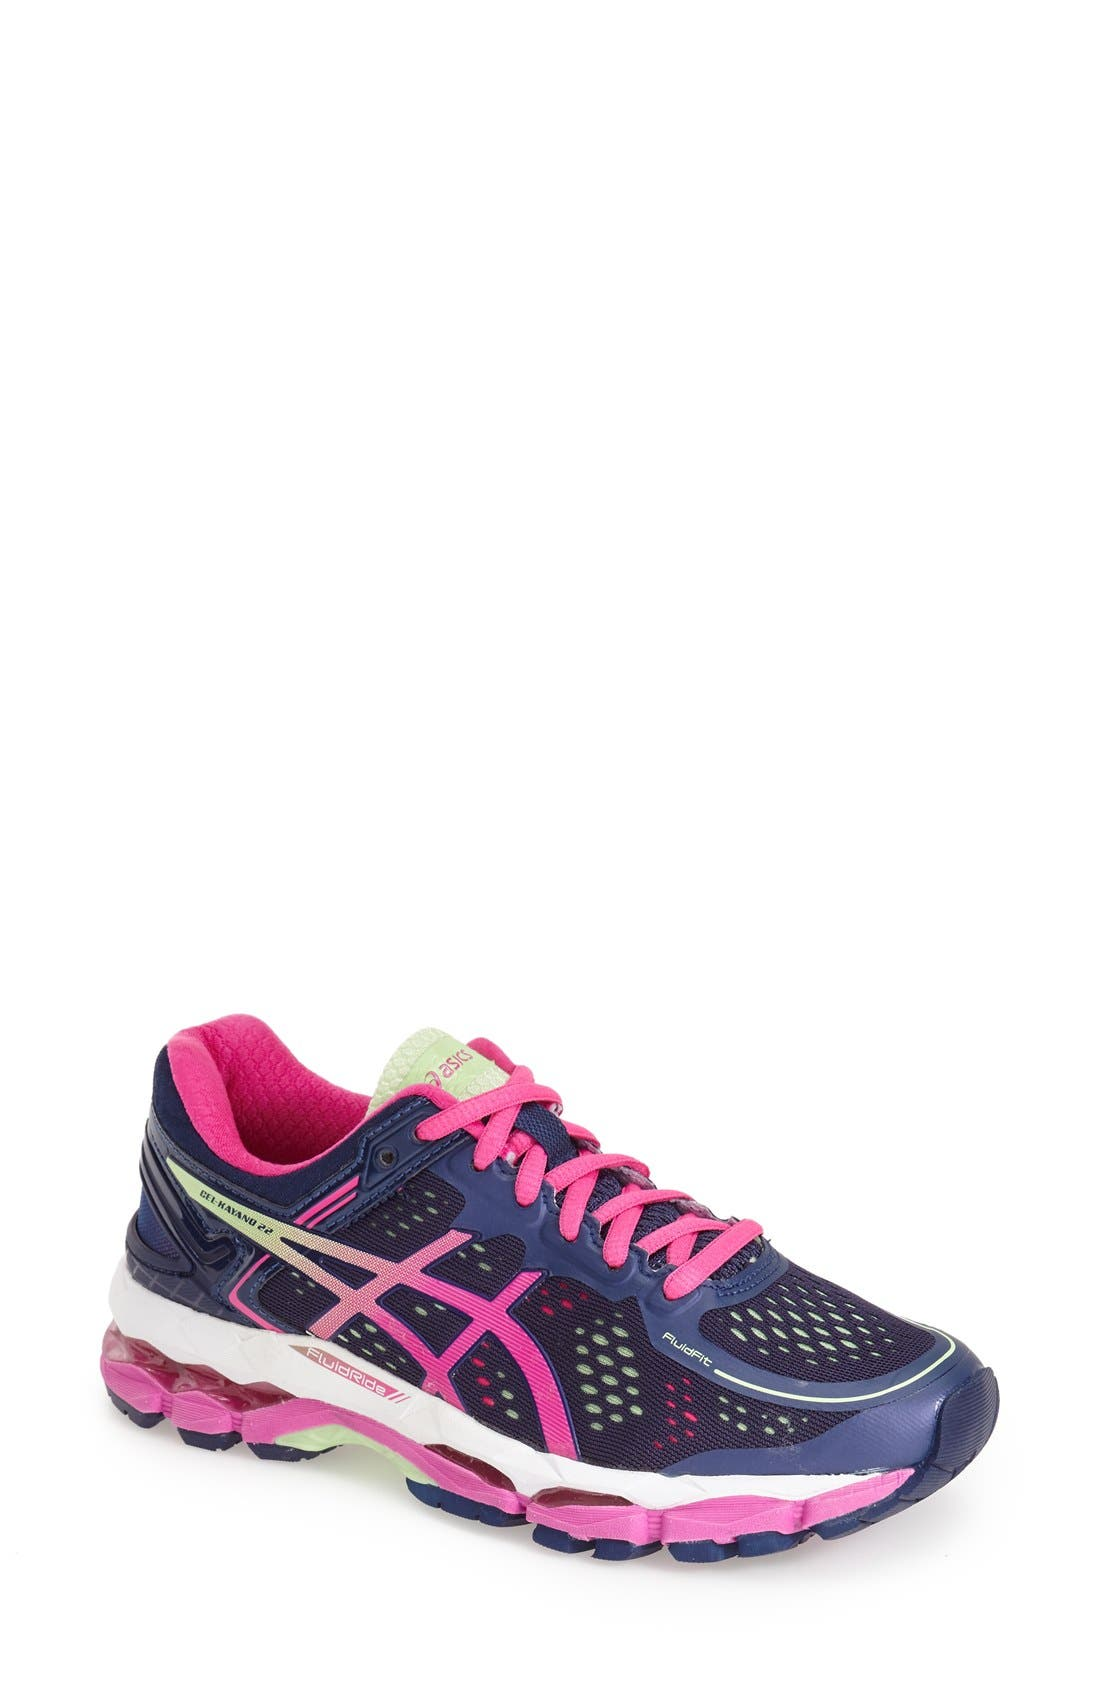 Main Image - ASICS® 'GEL-Kayano® 22' Running Shoe (Women